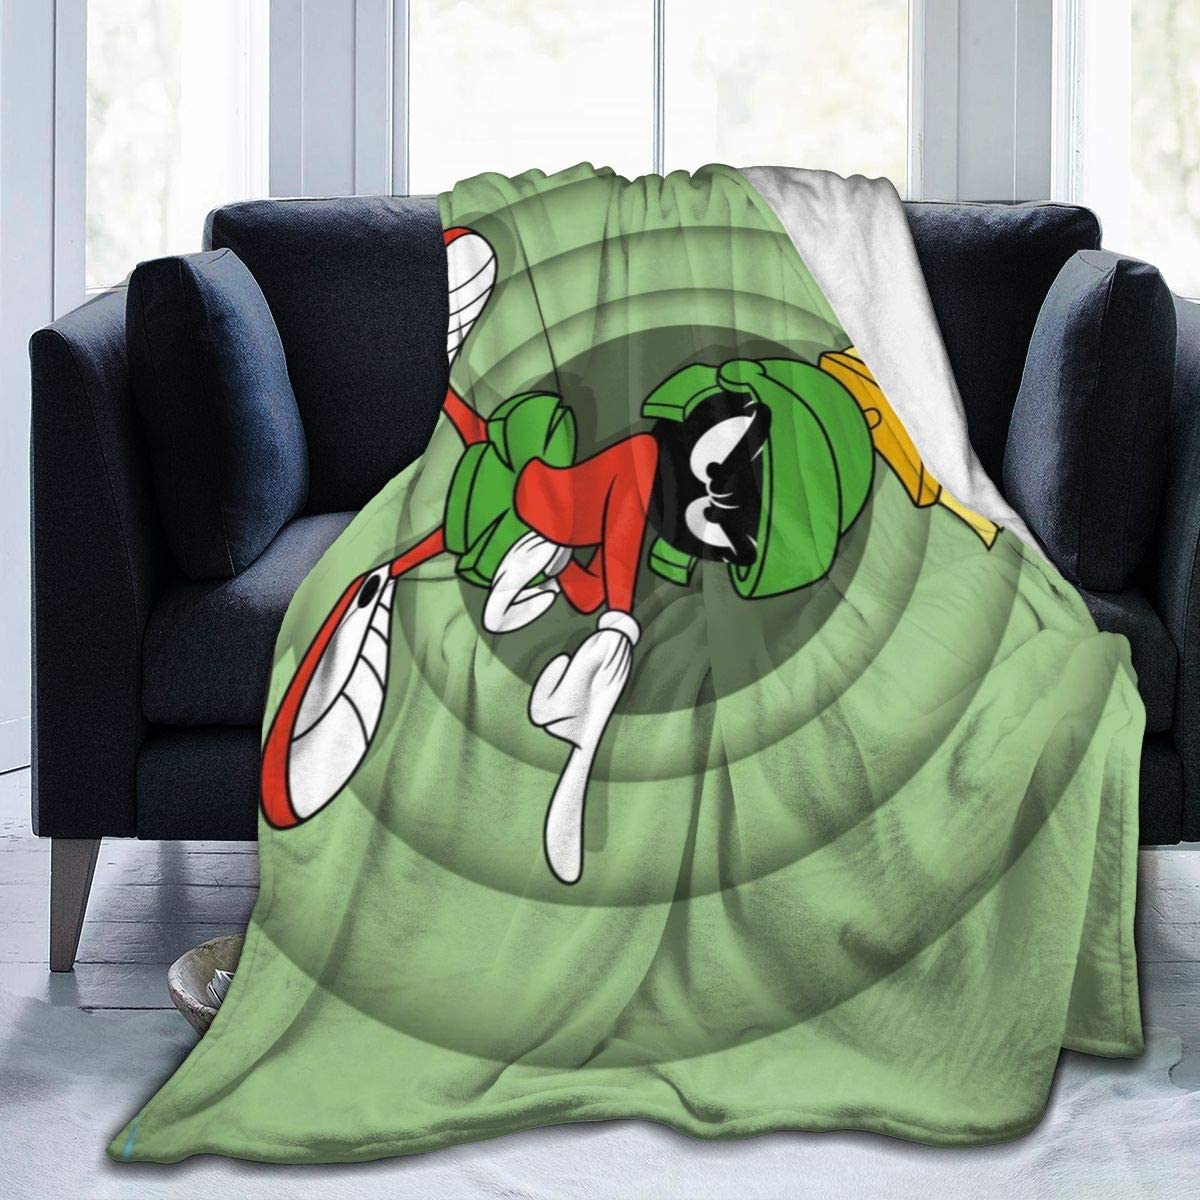 Re.membering Ultra Soft Micro Fleece Blanket Haughty Marvin-Martian Flannel Light Weight Warm Bed Blanket 3 Sizes